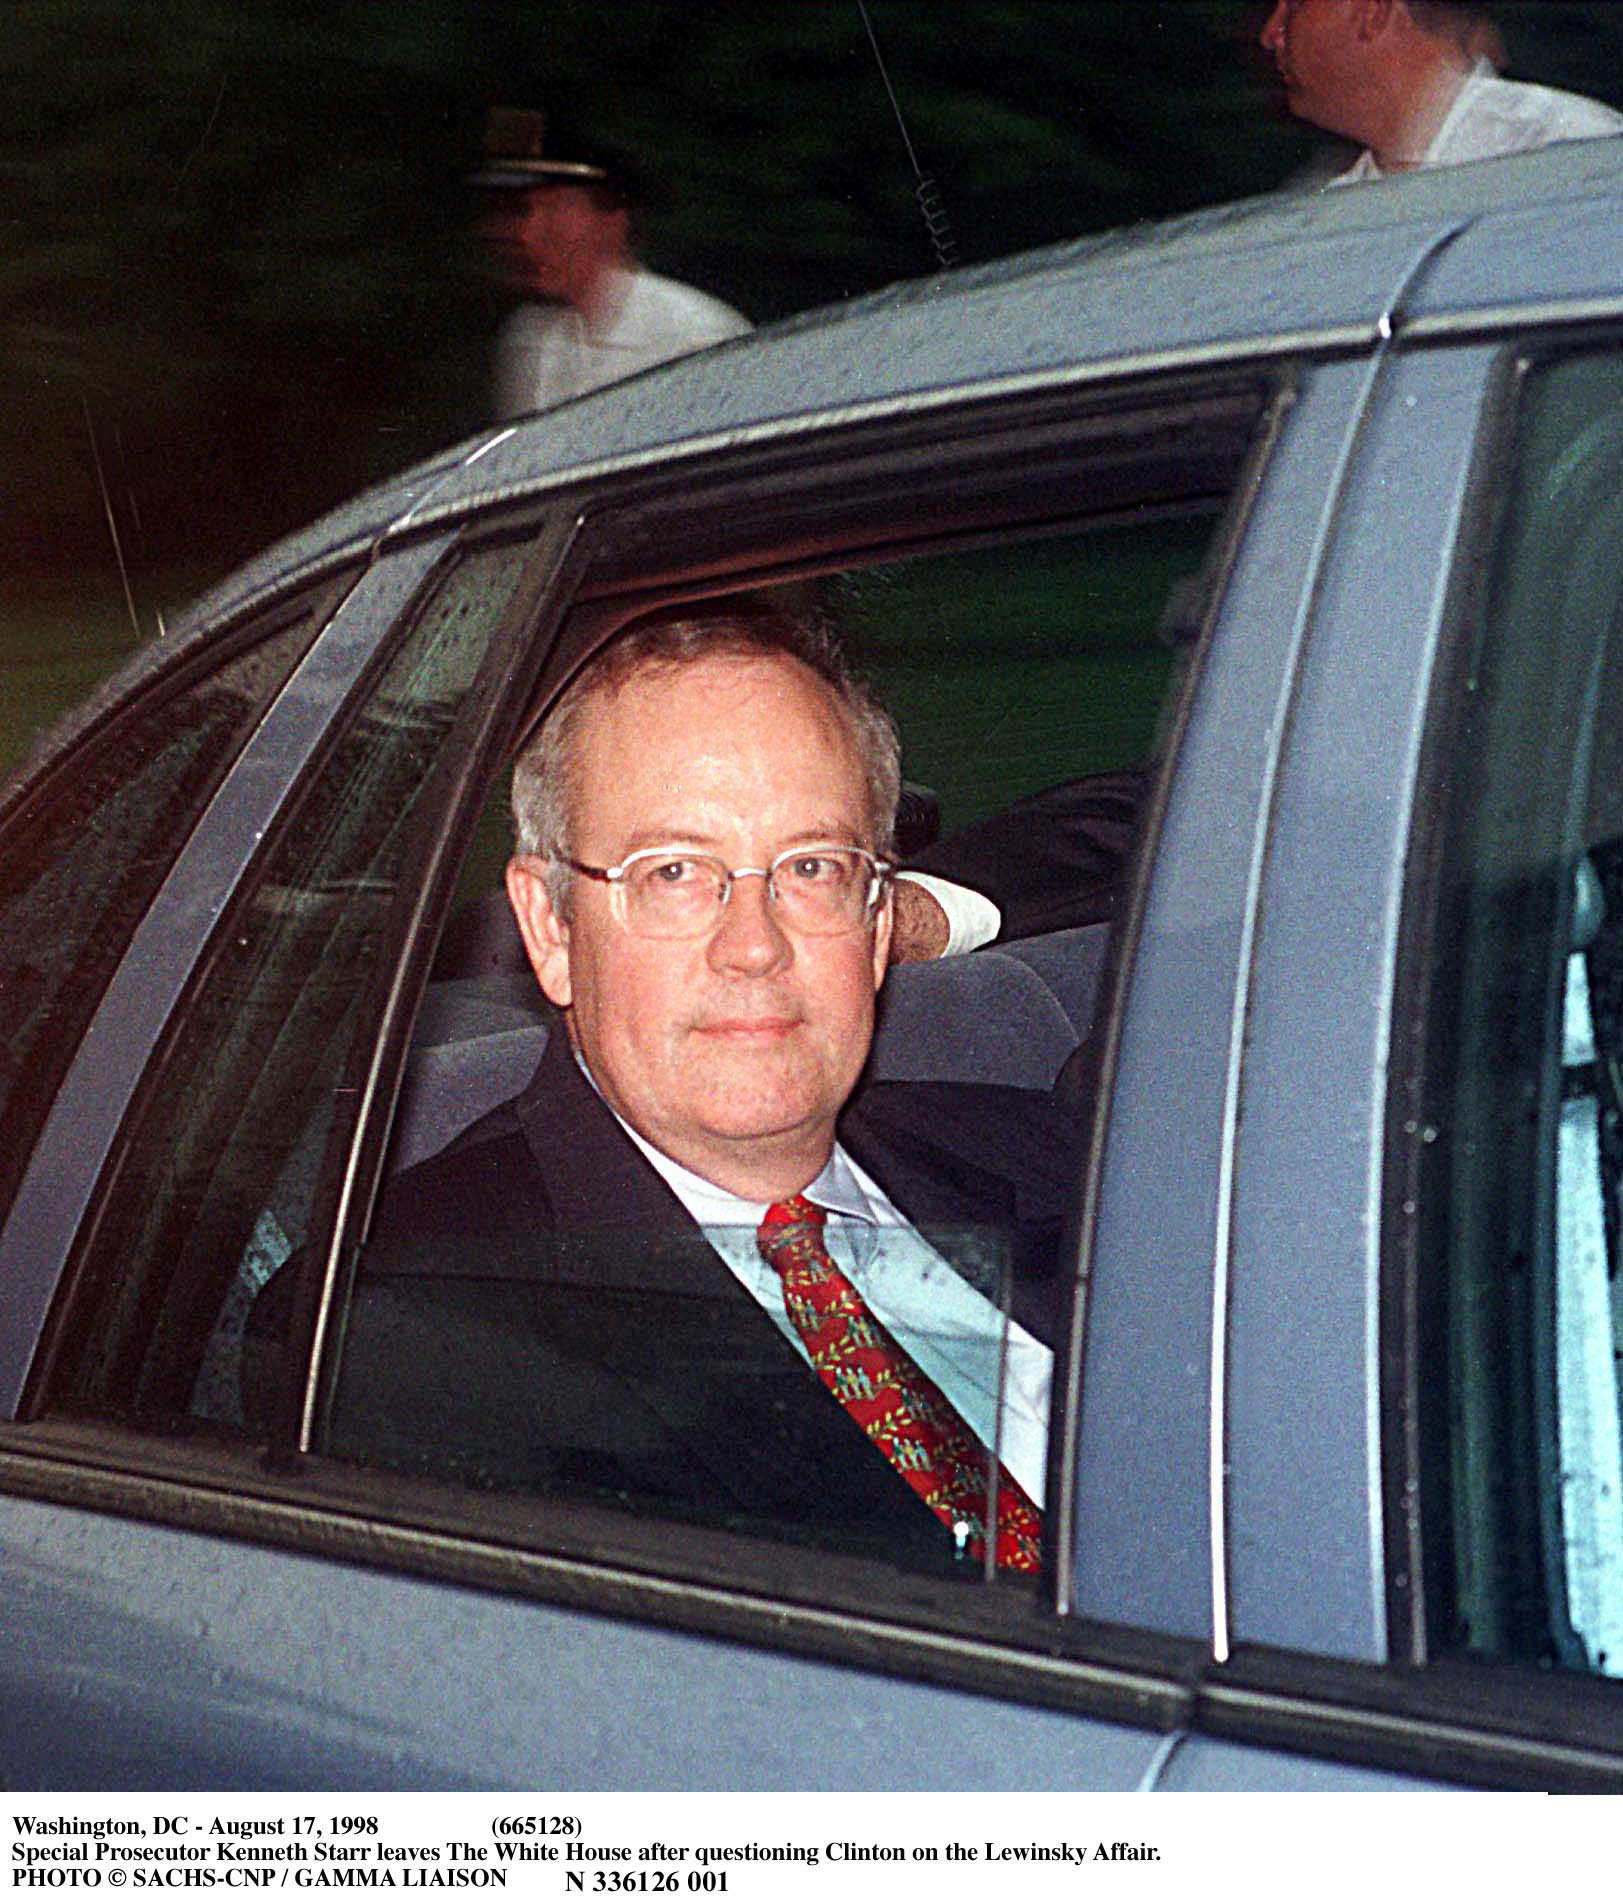 Washington, Dc - August 17, 1998 (665128) Special Prosecutor Kenneth Starr Leaves The White House After Questioning Clinton On The Lewinsky Affair. (Photo By Pool/Getty Images)